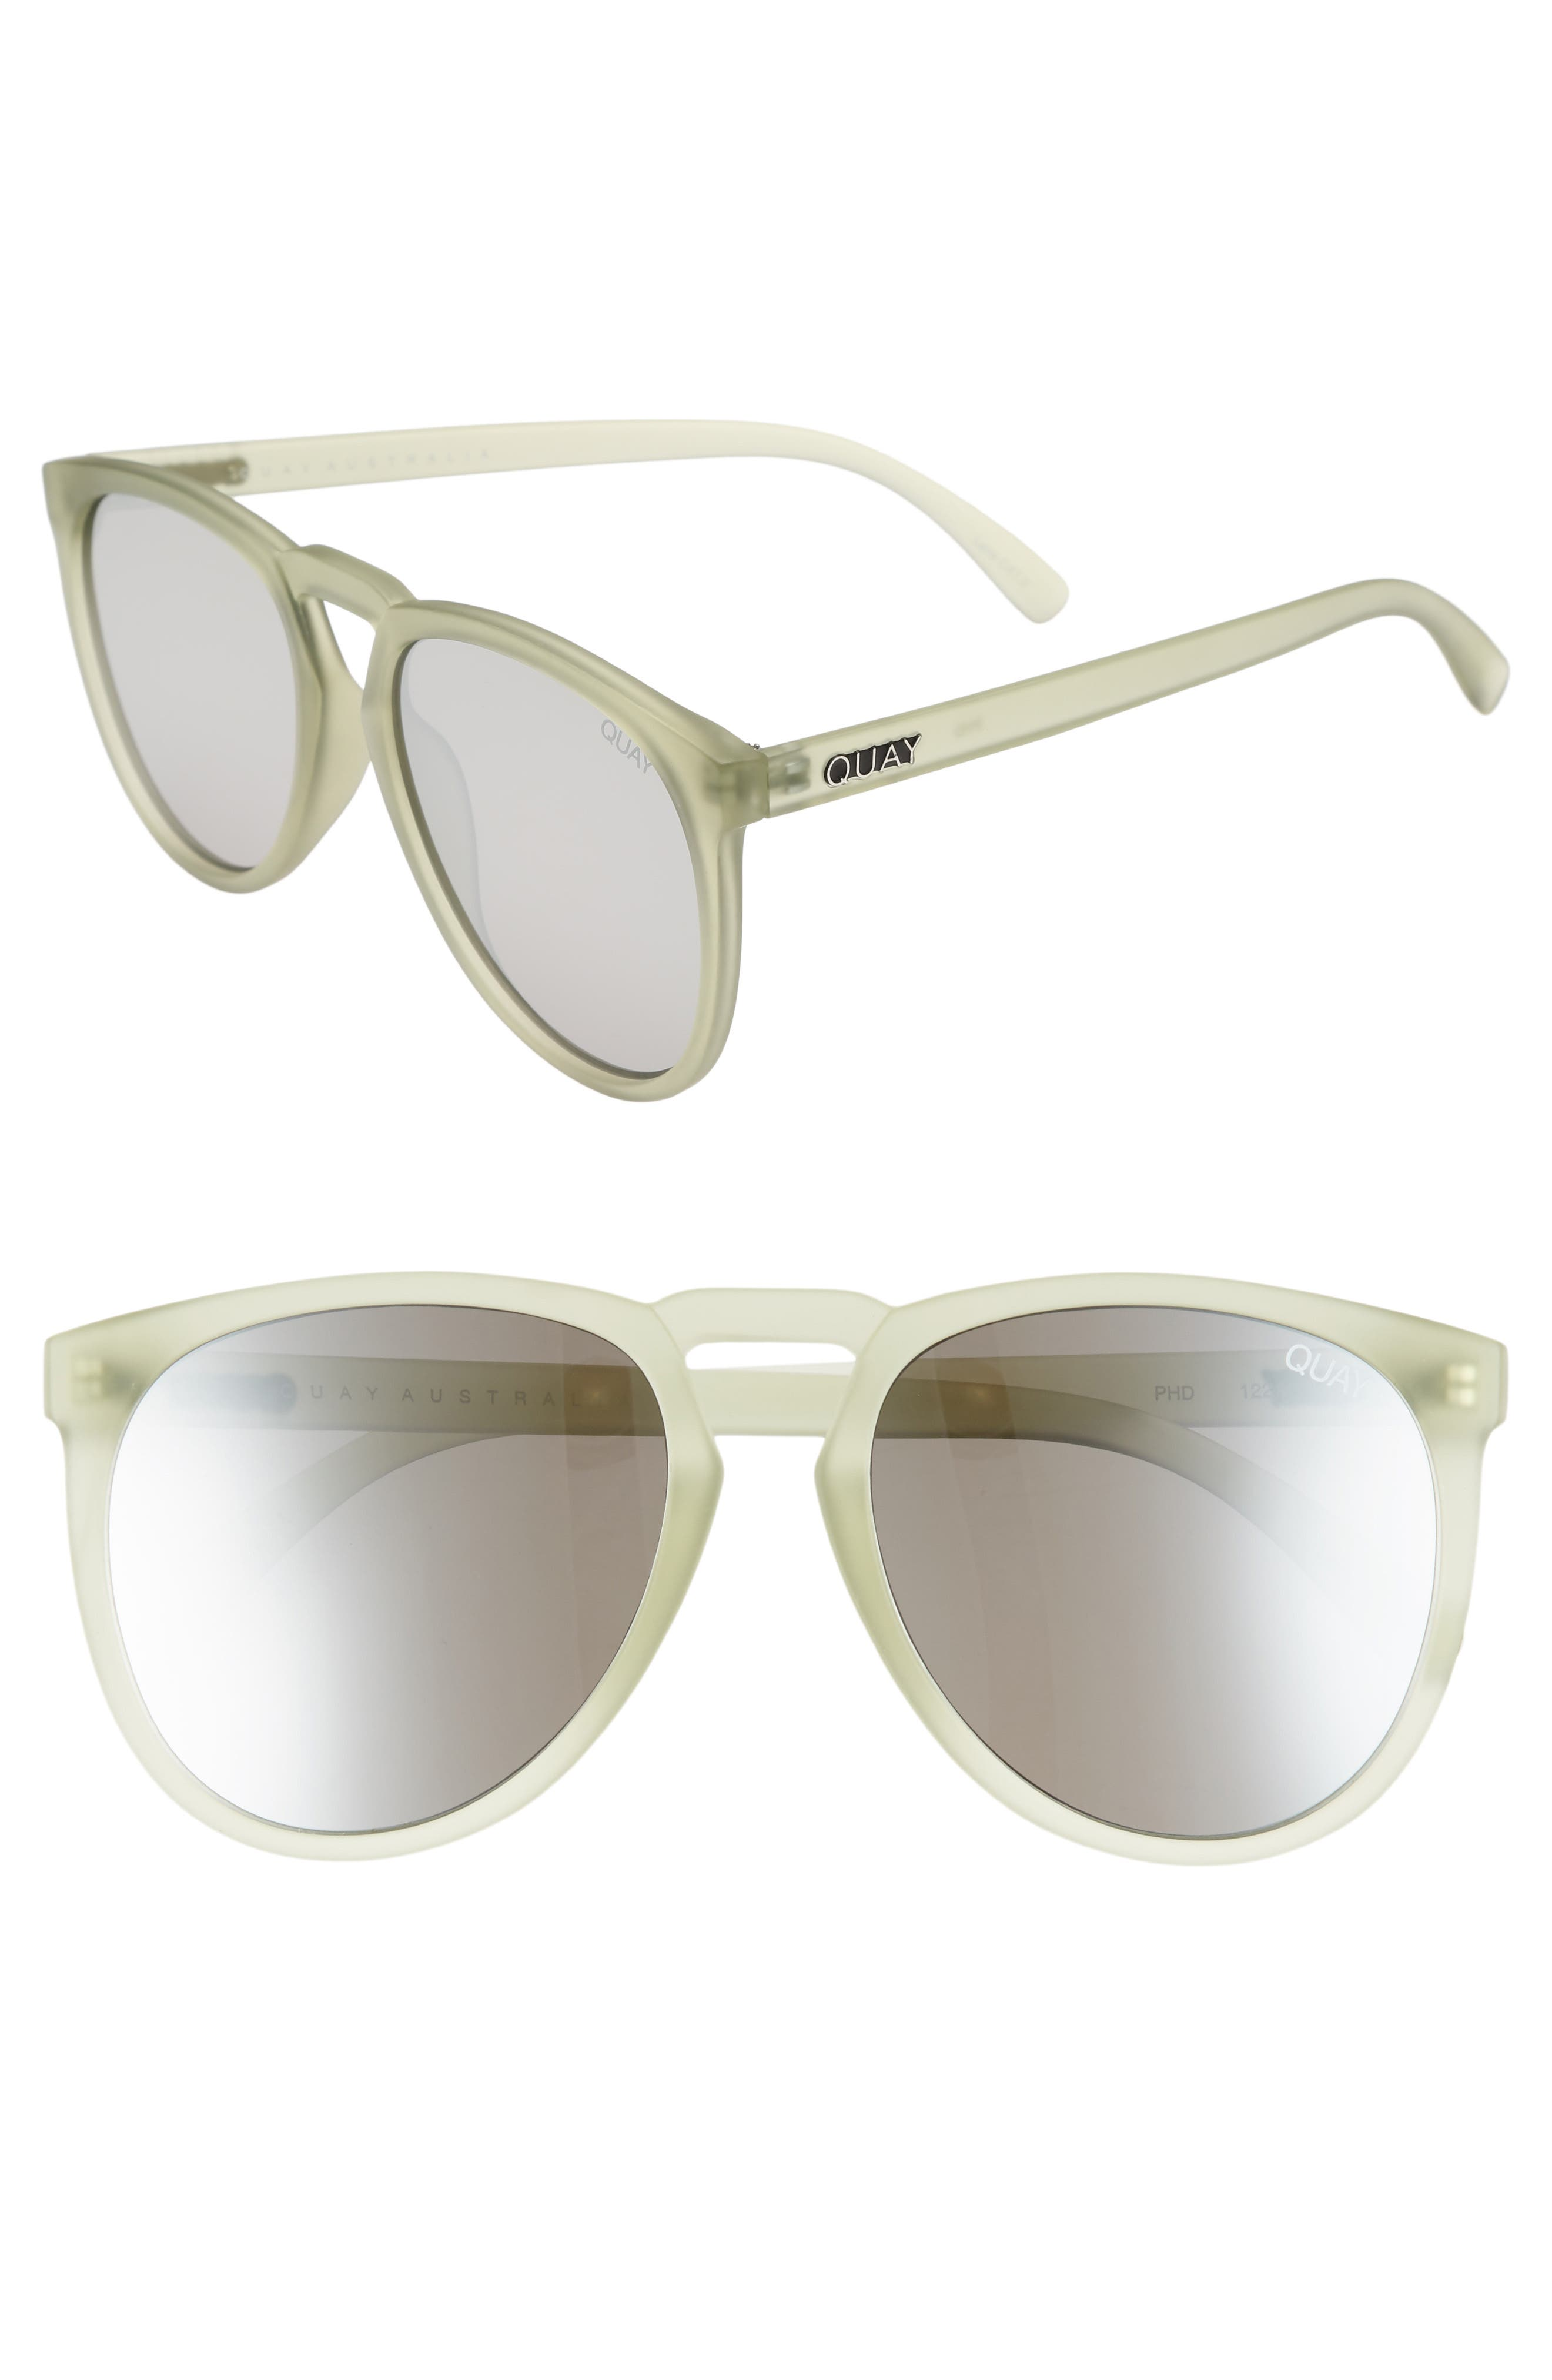 PhD 65mm Sunglasses,                             Main thumbnail 1, color,                             OLIVE/ SILVER